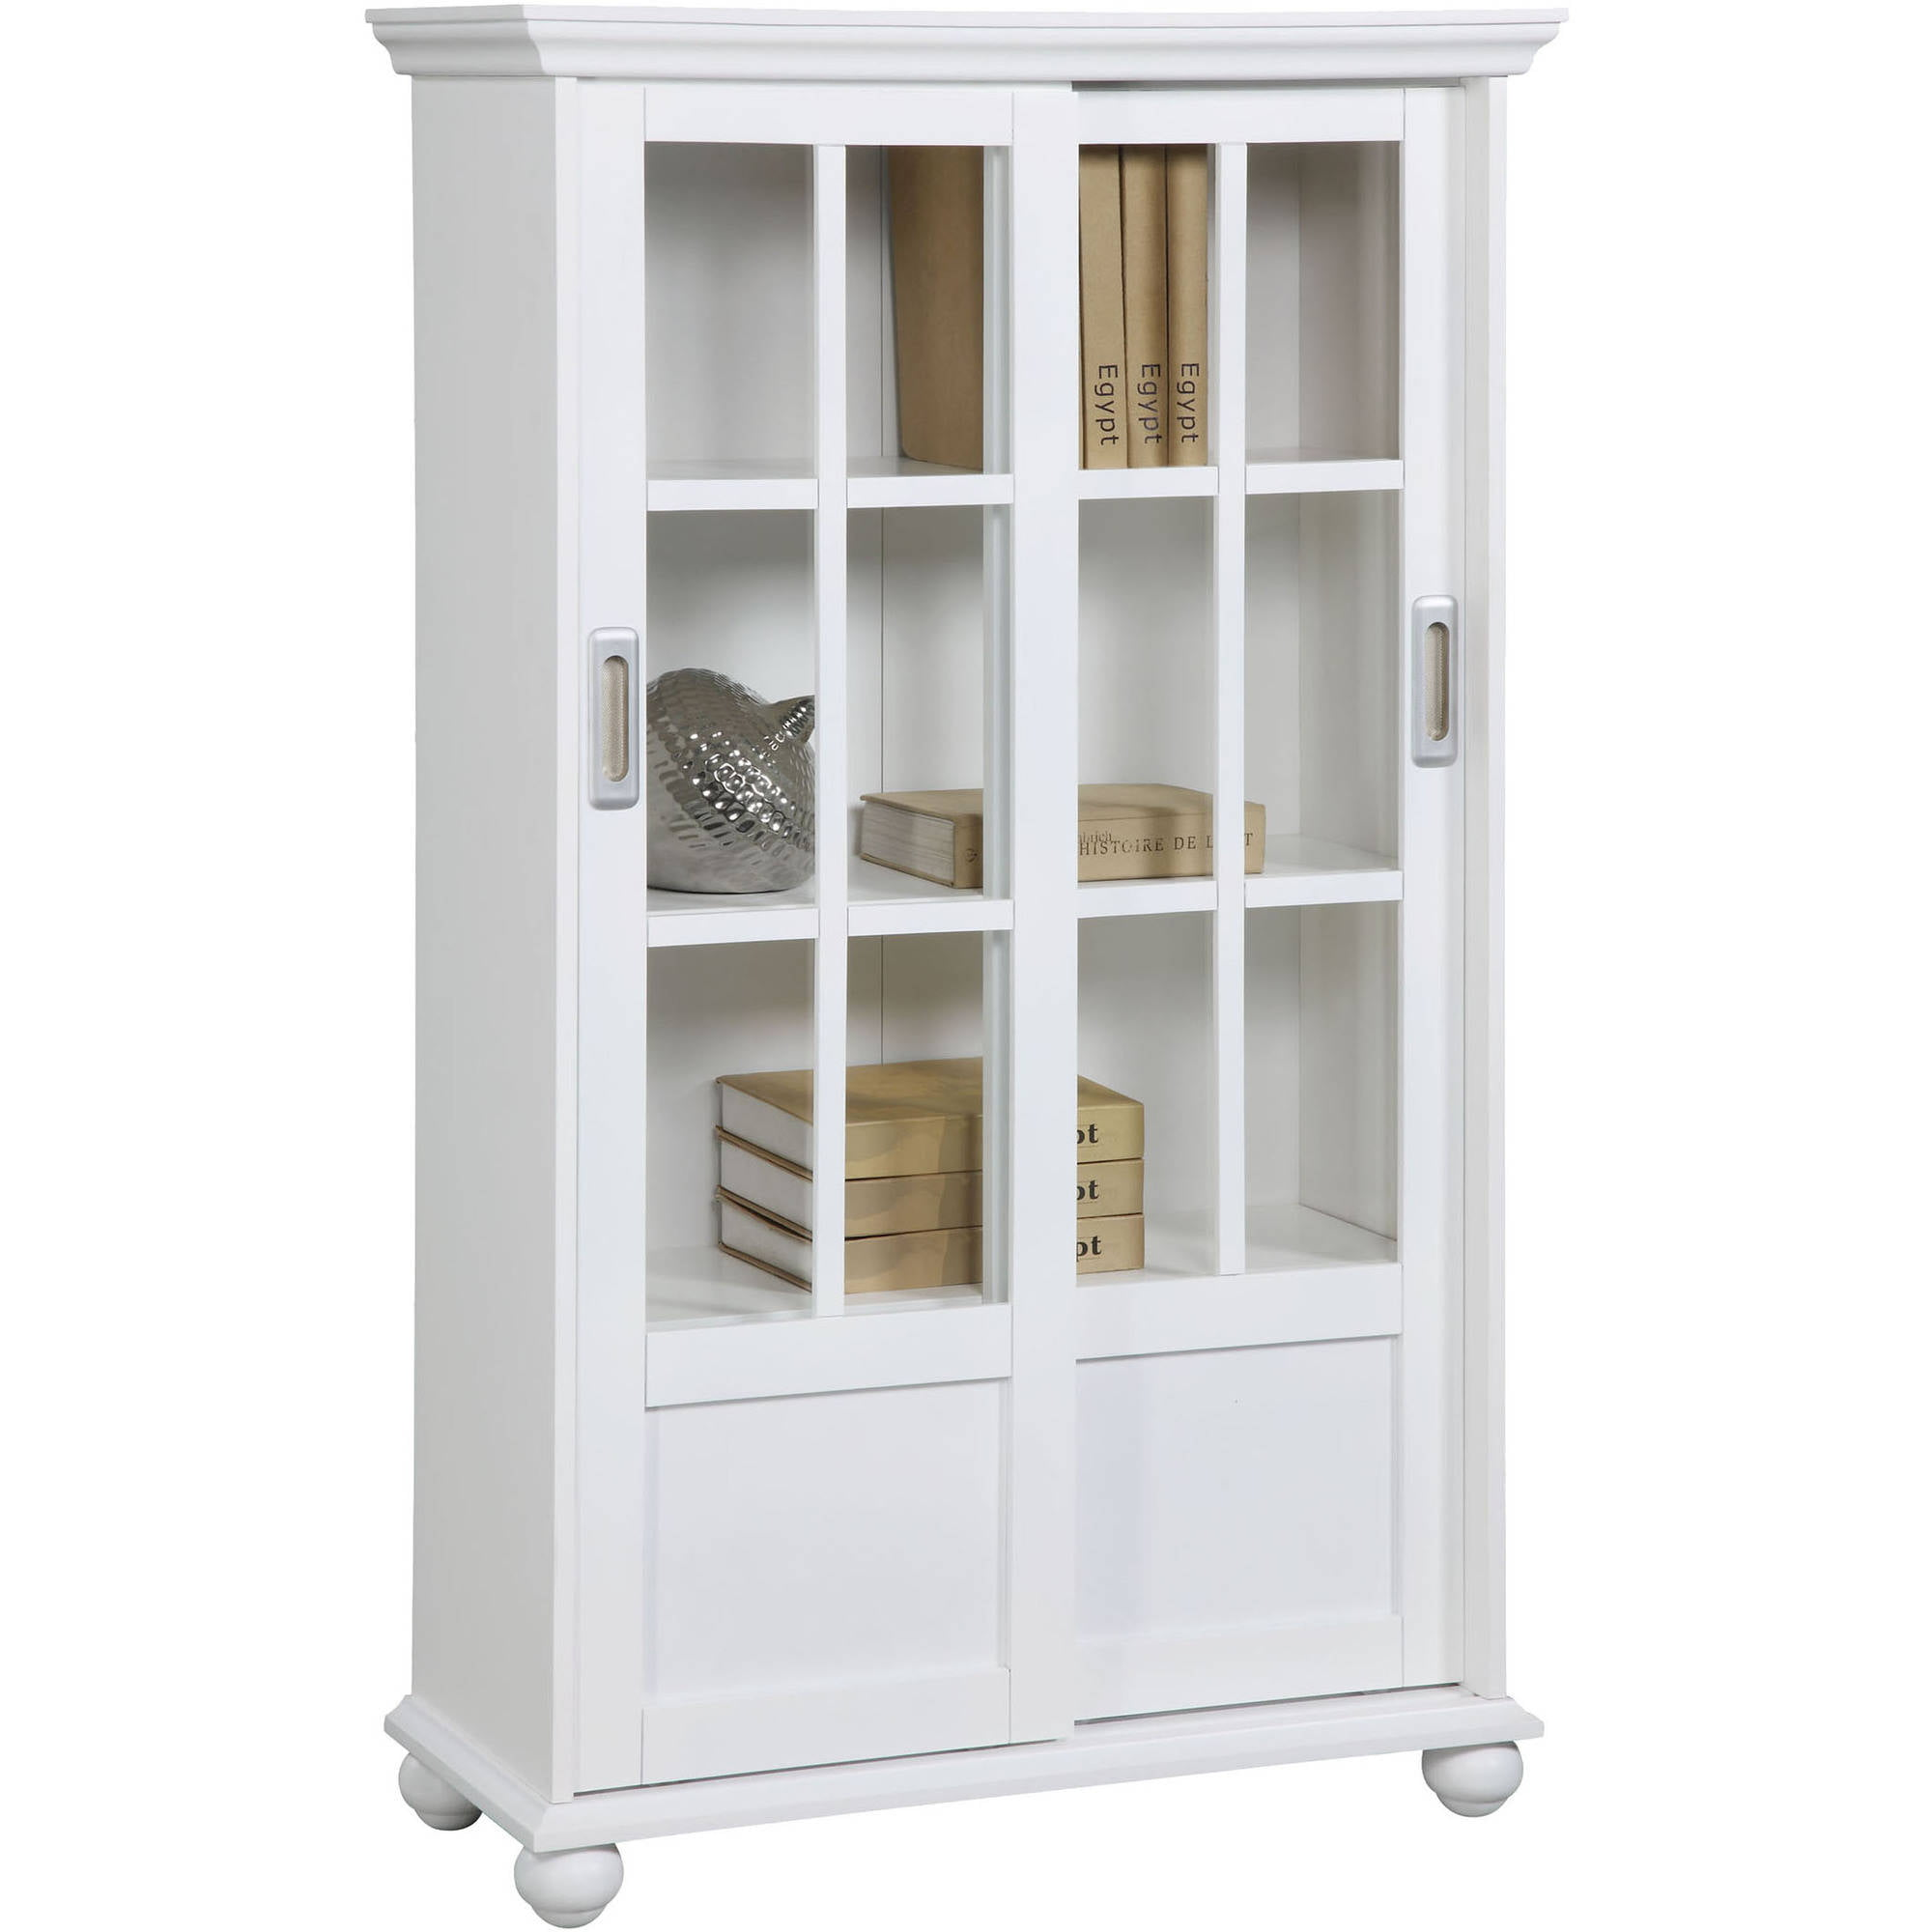 bookshelves white best superb decorative book doors ikea shelves sliding modern combination trendy storage with bookcases door liatorp bookcase full inspirations tall shelf